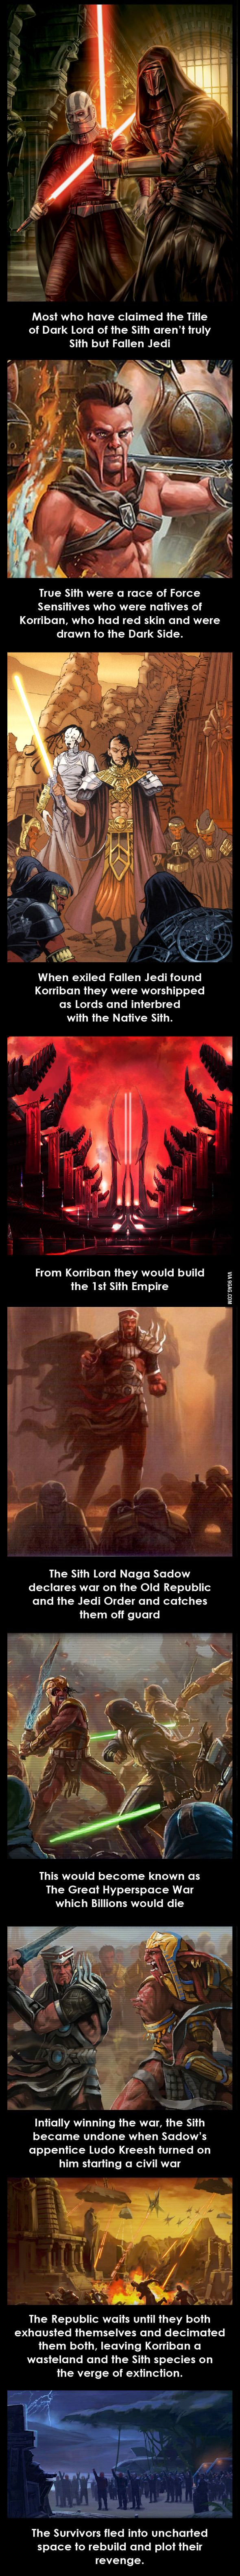 The Origins Of The Sith (Pre-Disney) - 9GAG